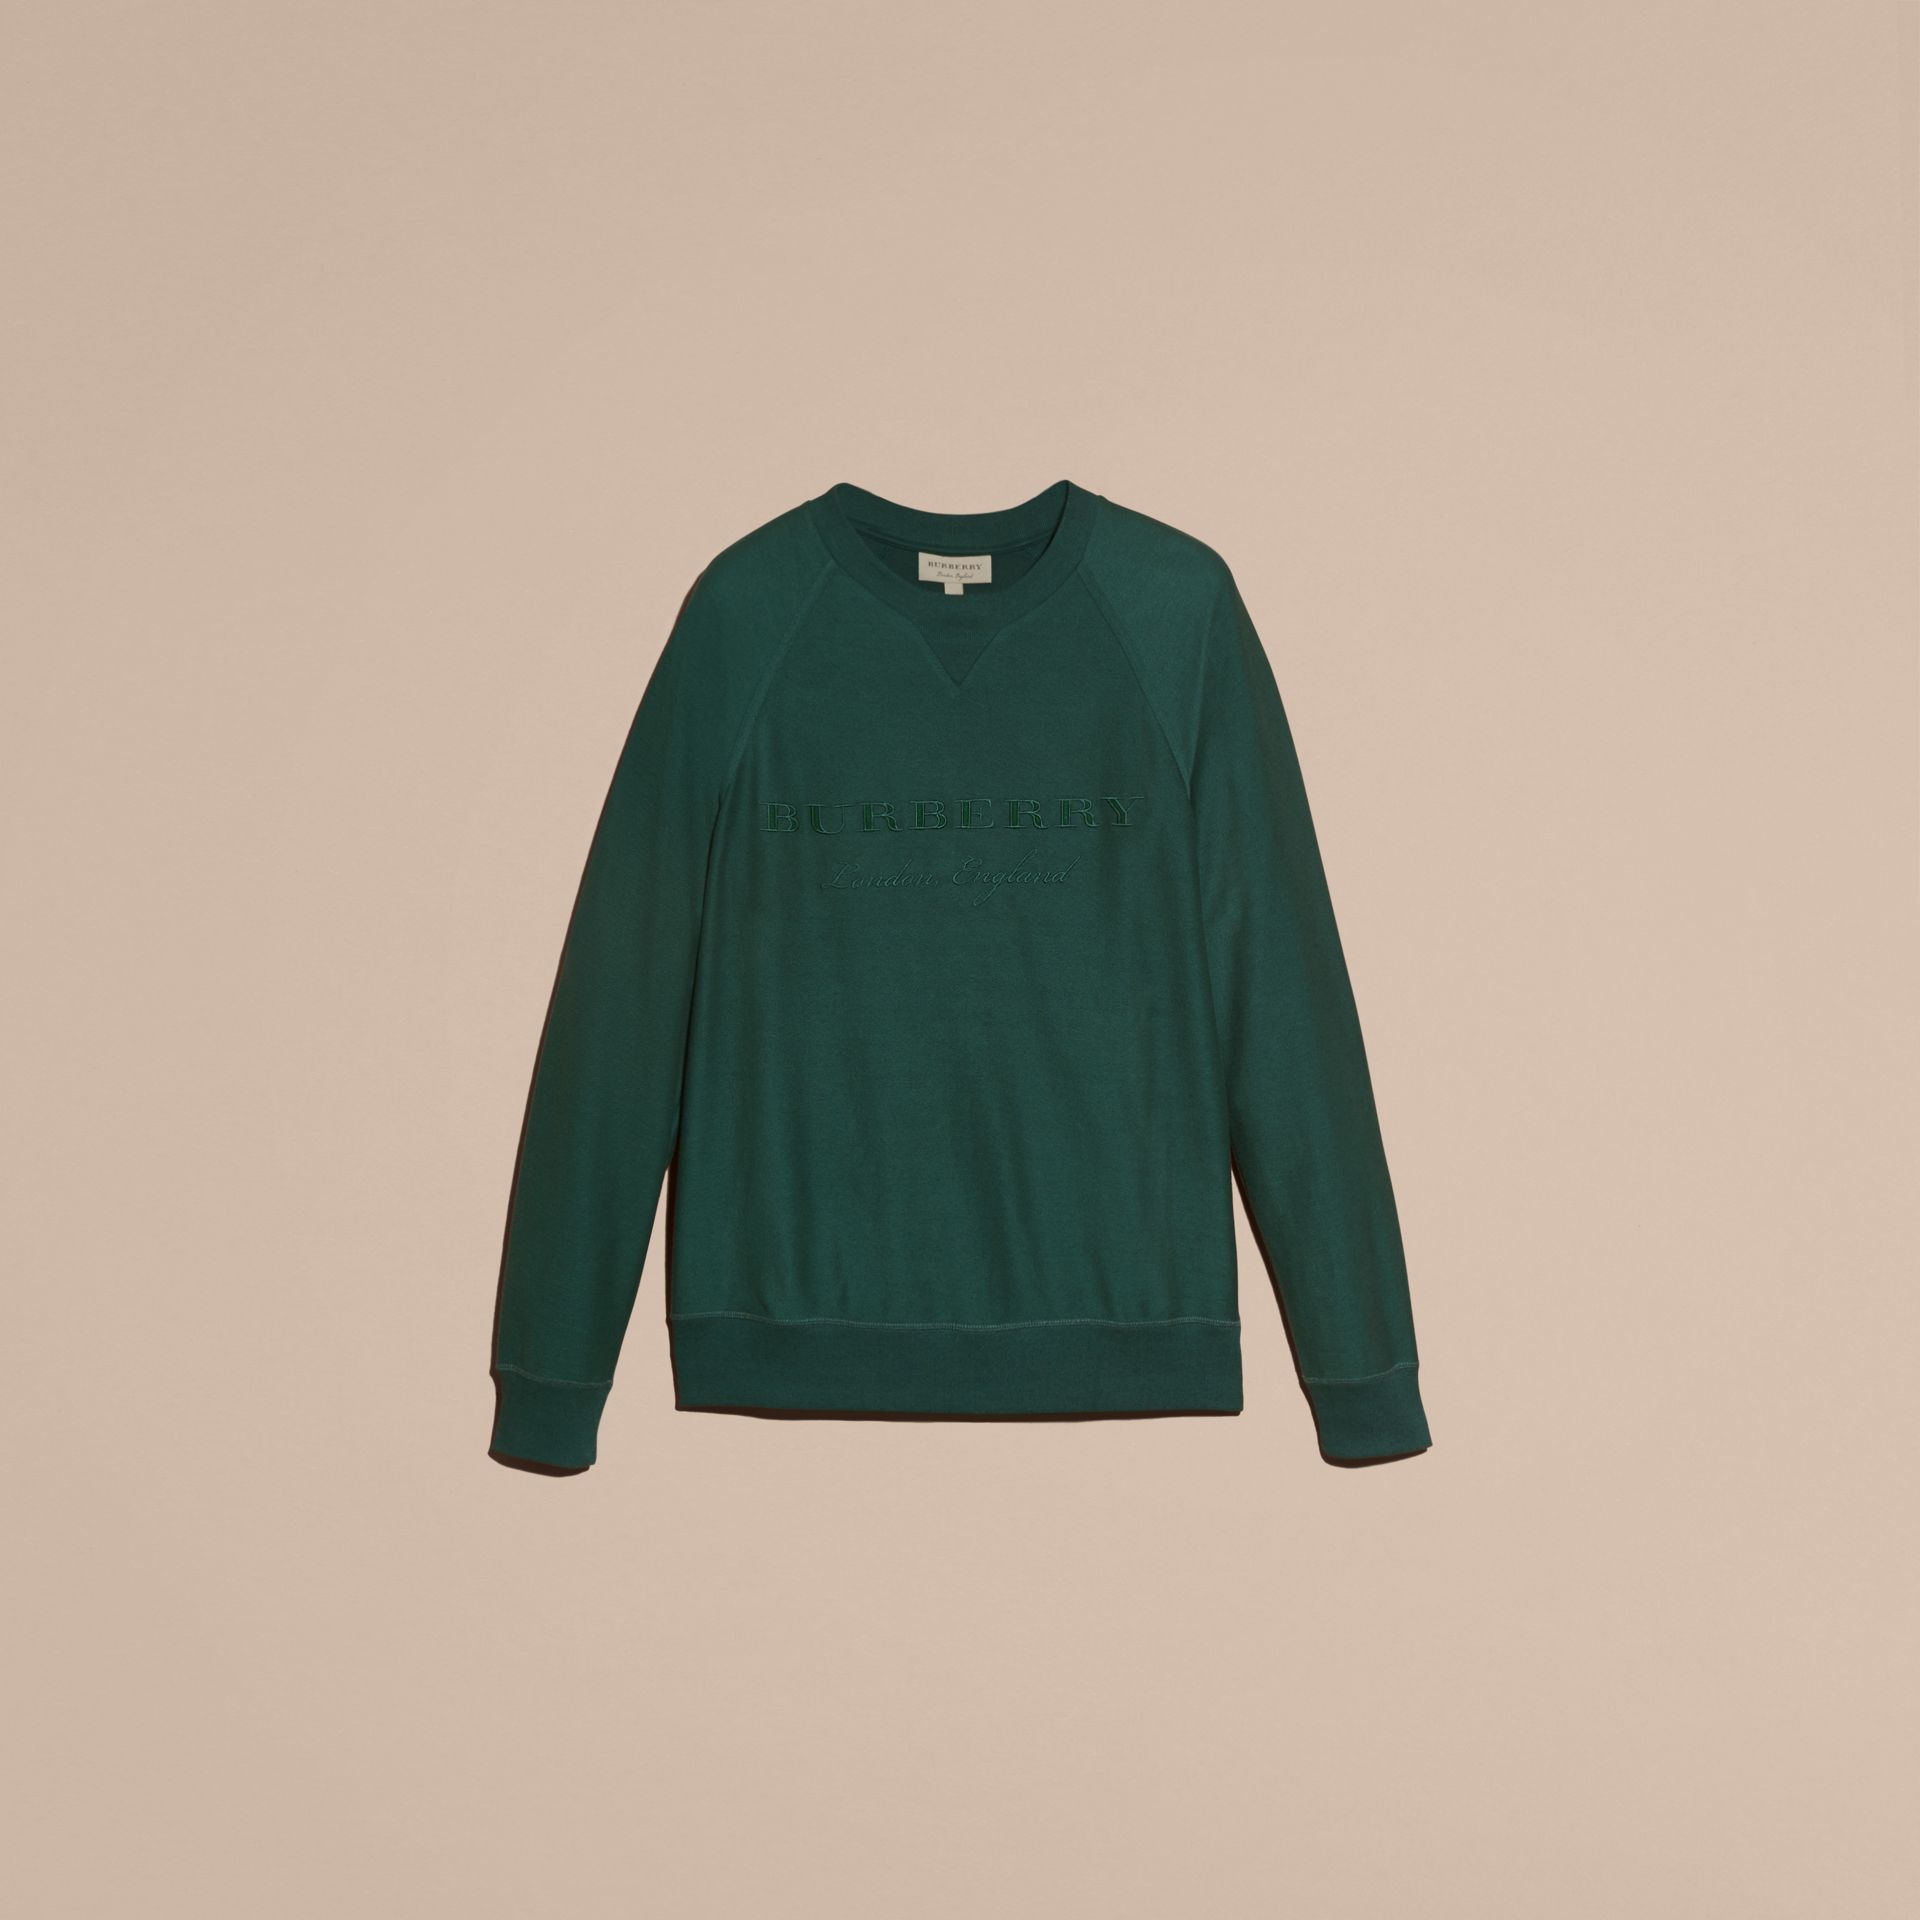 Embroidered Motif Cotton-blend Jersey Sweatshirt Deep Teal - gallery image 4